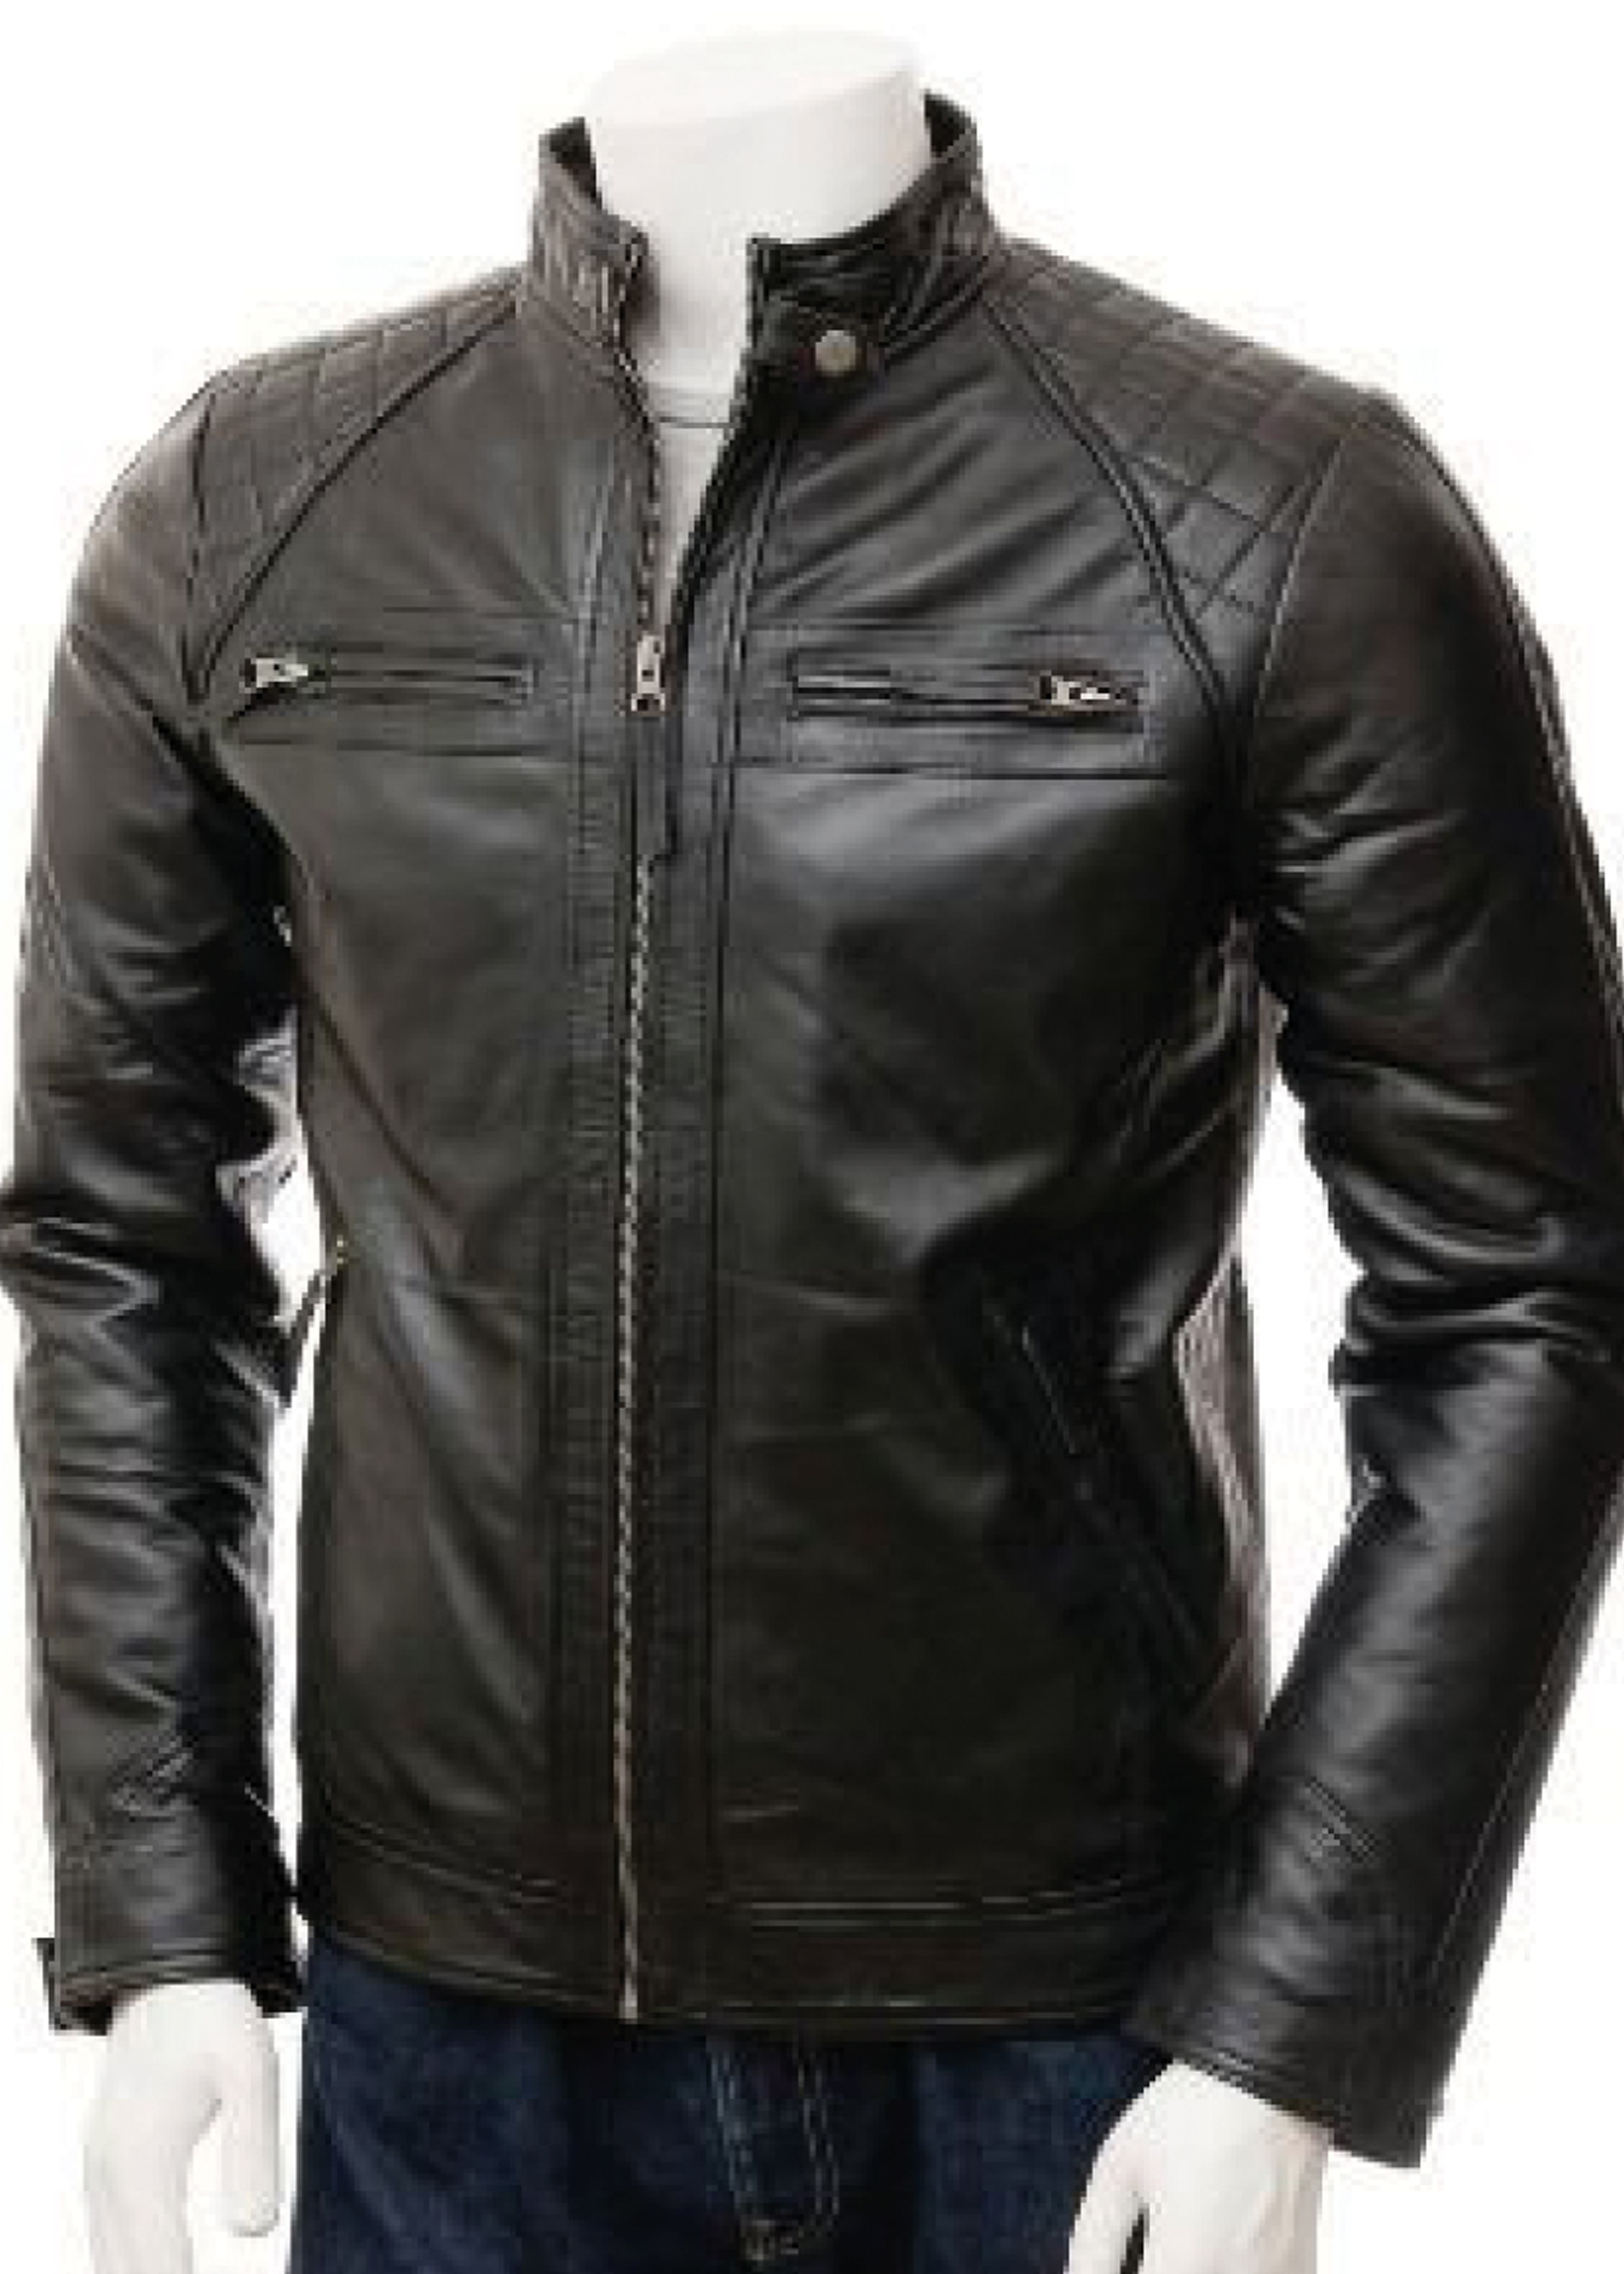 Black Leather Jacket For Mens In Usa Uk Canada Germany France New York Los Angeles Chicago Houston Philadelphia Phoenix San Antonio San Diego Dalla Leather Jacket Men Black Leather Biker Jacket